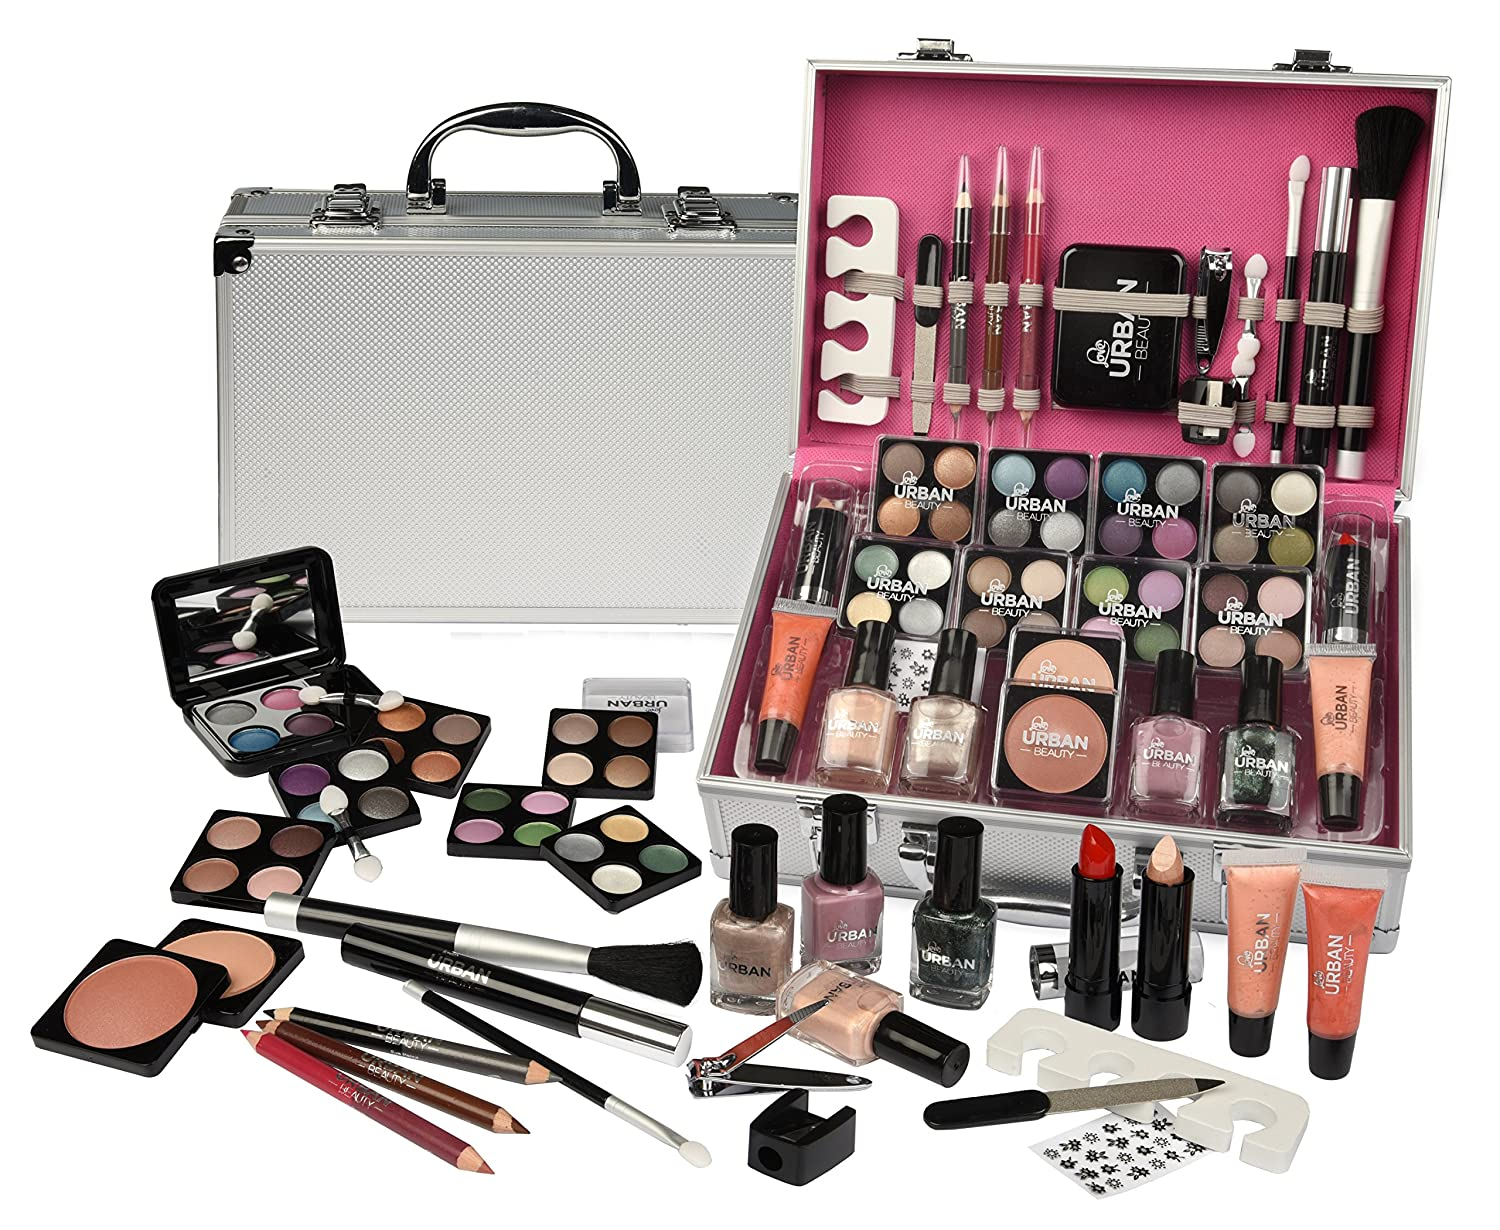 6564151a7 Urban Beauty - Vanity Case Cosmetic Make Up Urban Beauty Box Travel Carry  Gift Storage 60 Piece: Amazon.co.uk: Beauty